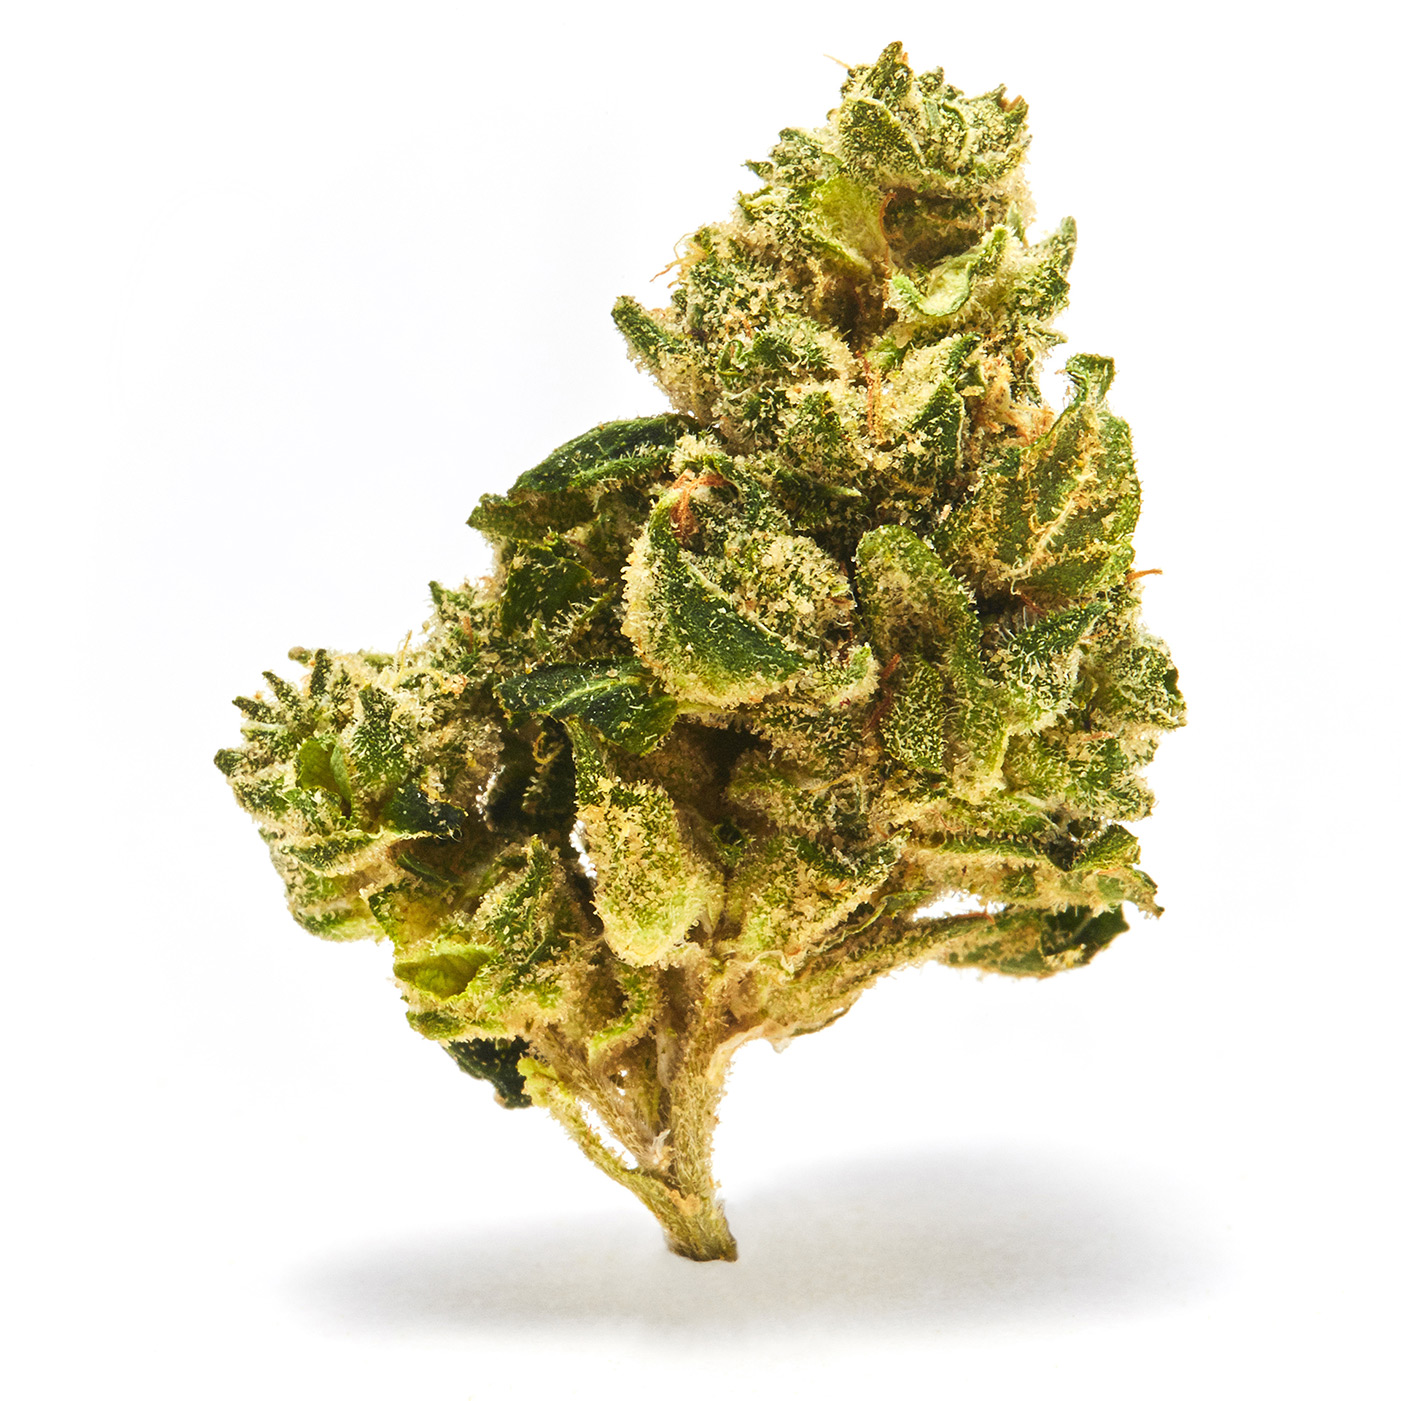 THCDesign_LemonMerengue_Nug_Cannabis_2167.jpg